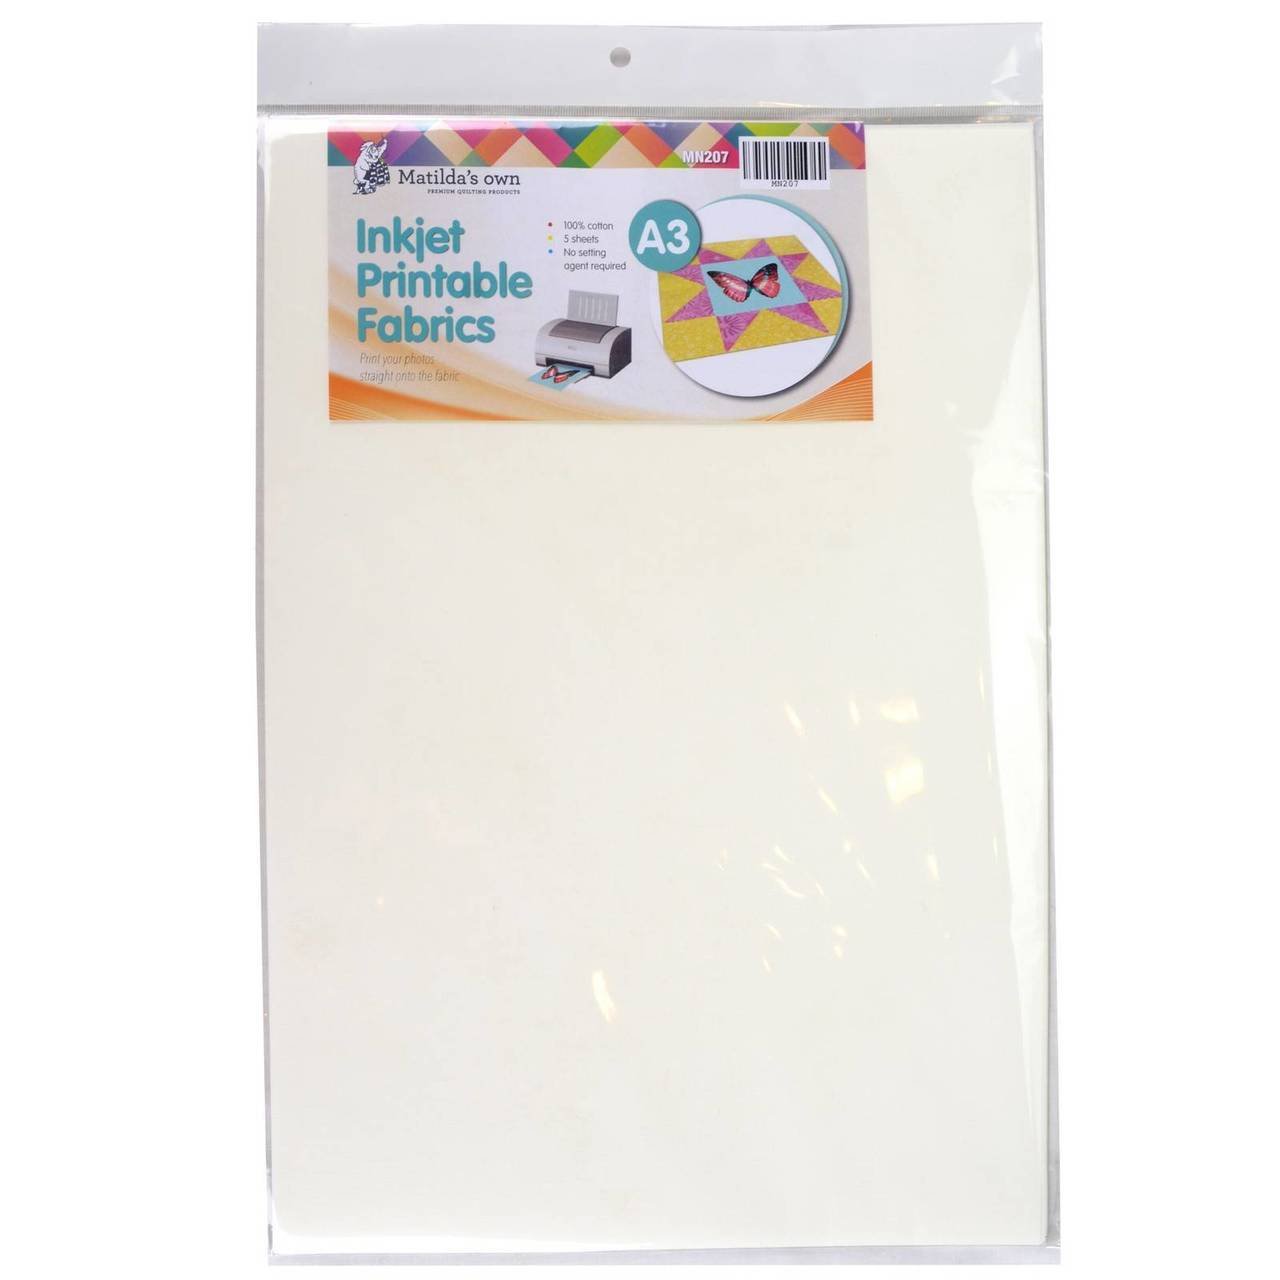 image regarding Printable Fabric Paper referred to as Inkjet Printable Cloth A3 5 sheets Matildas Particular